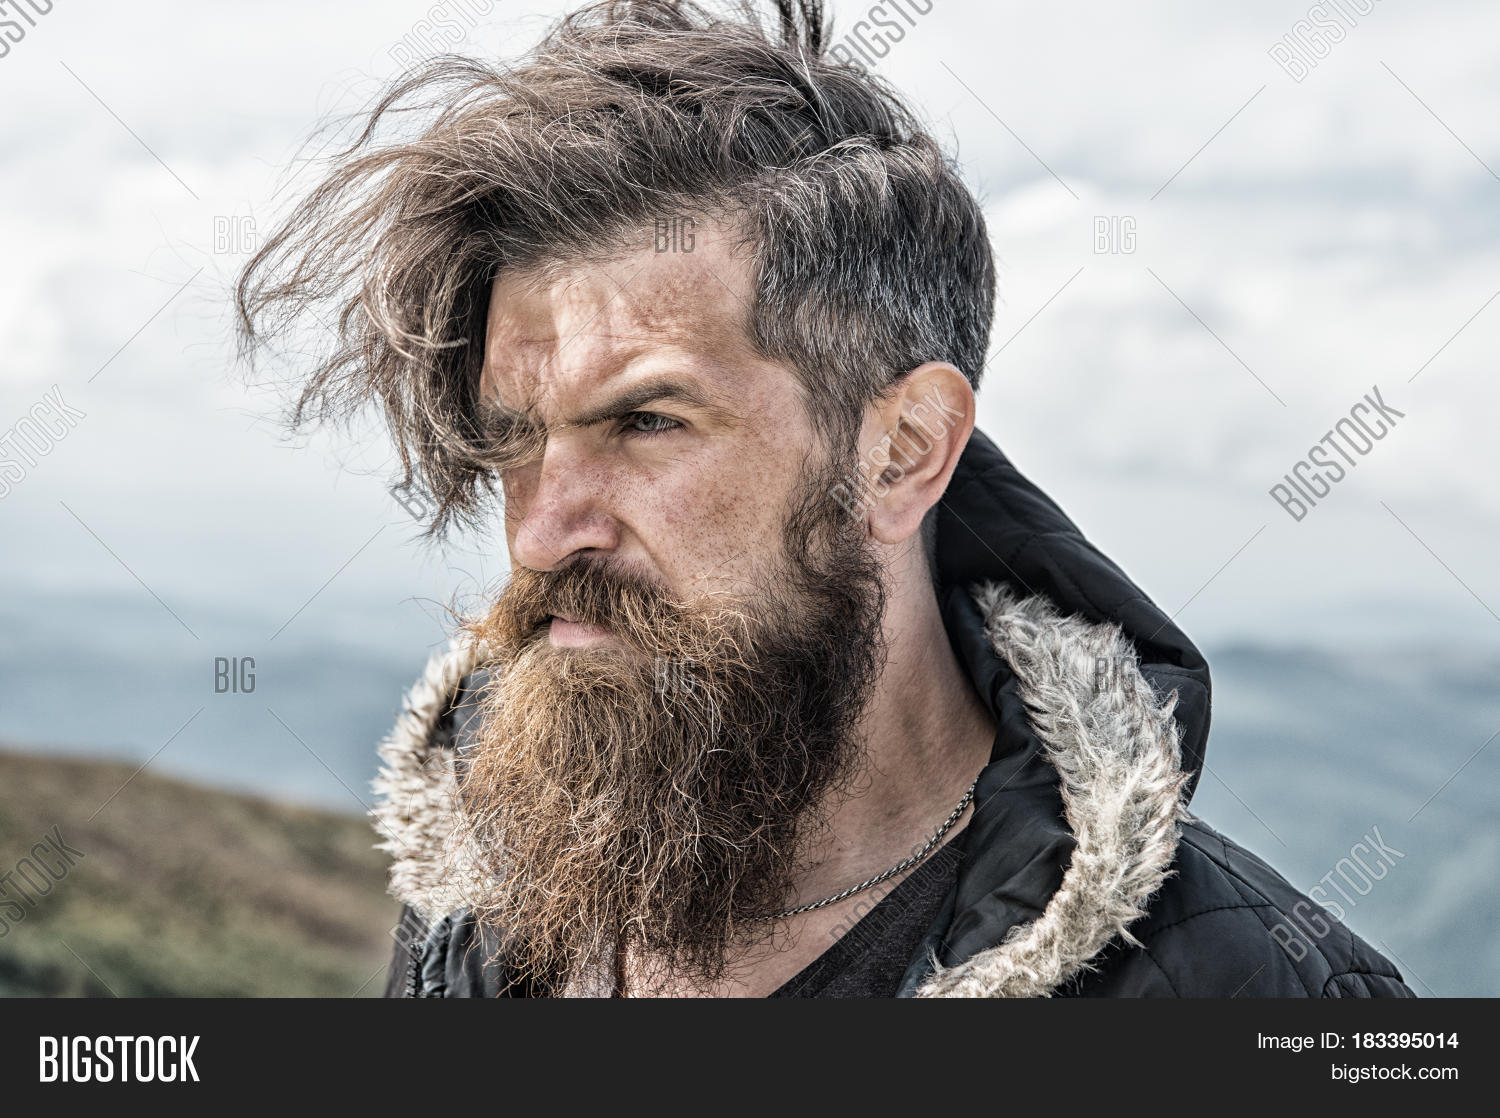 hipster bearded man image photo free trial bigstock